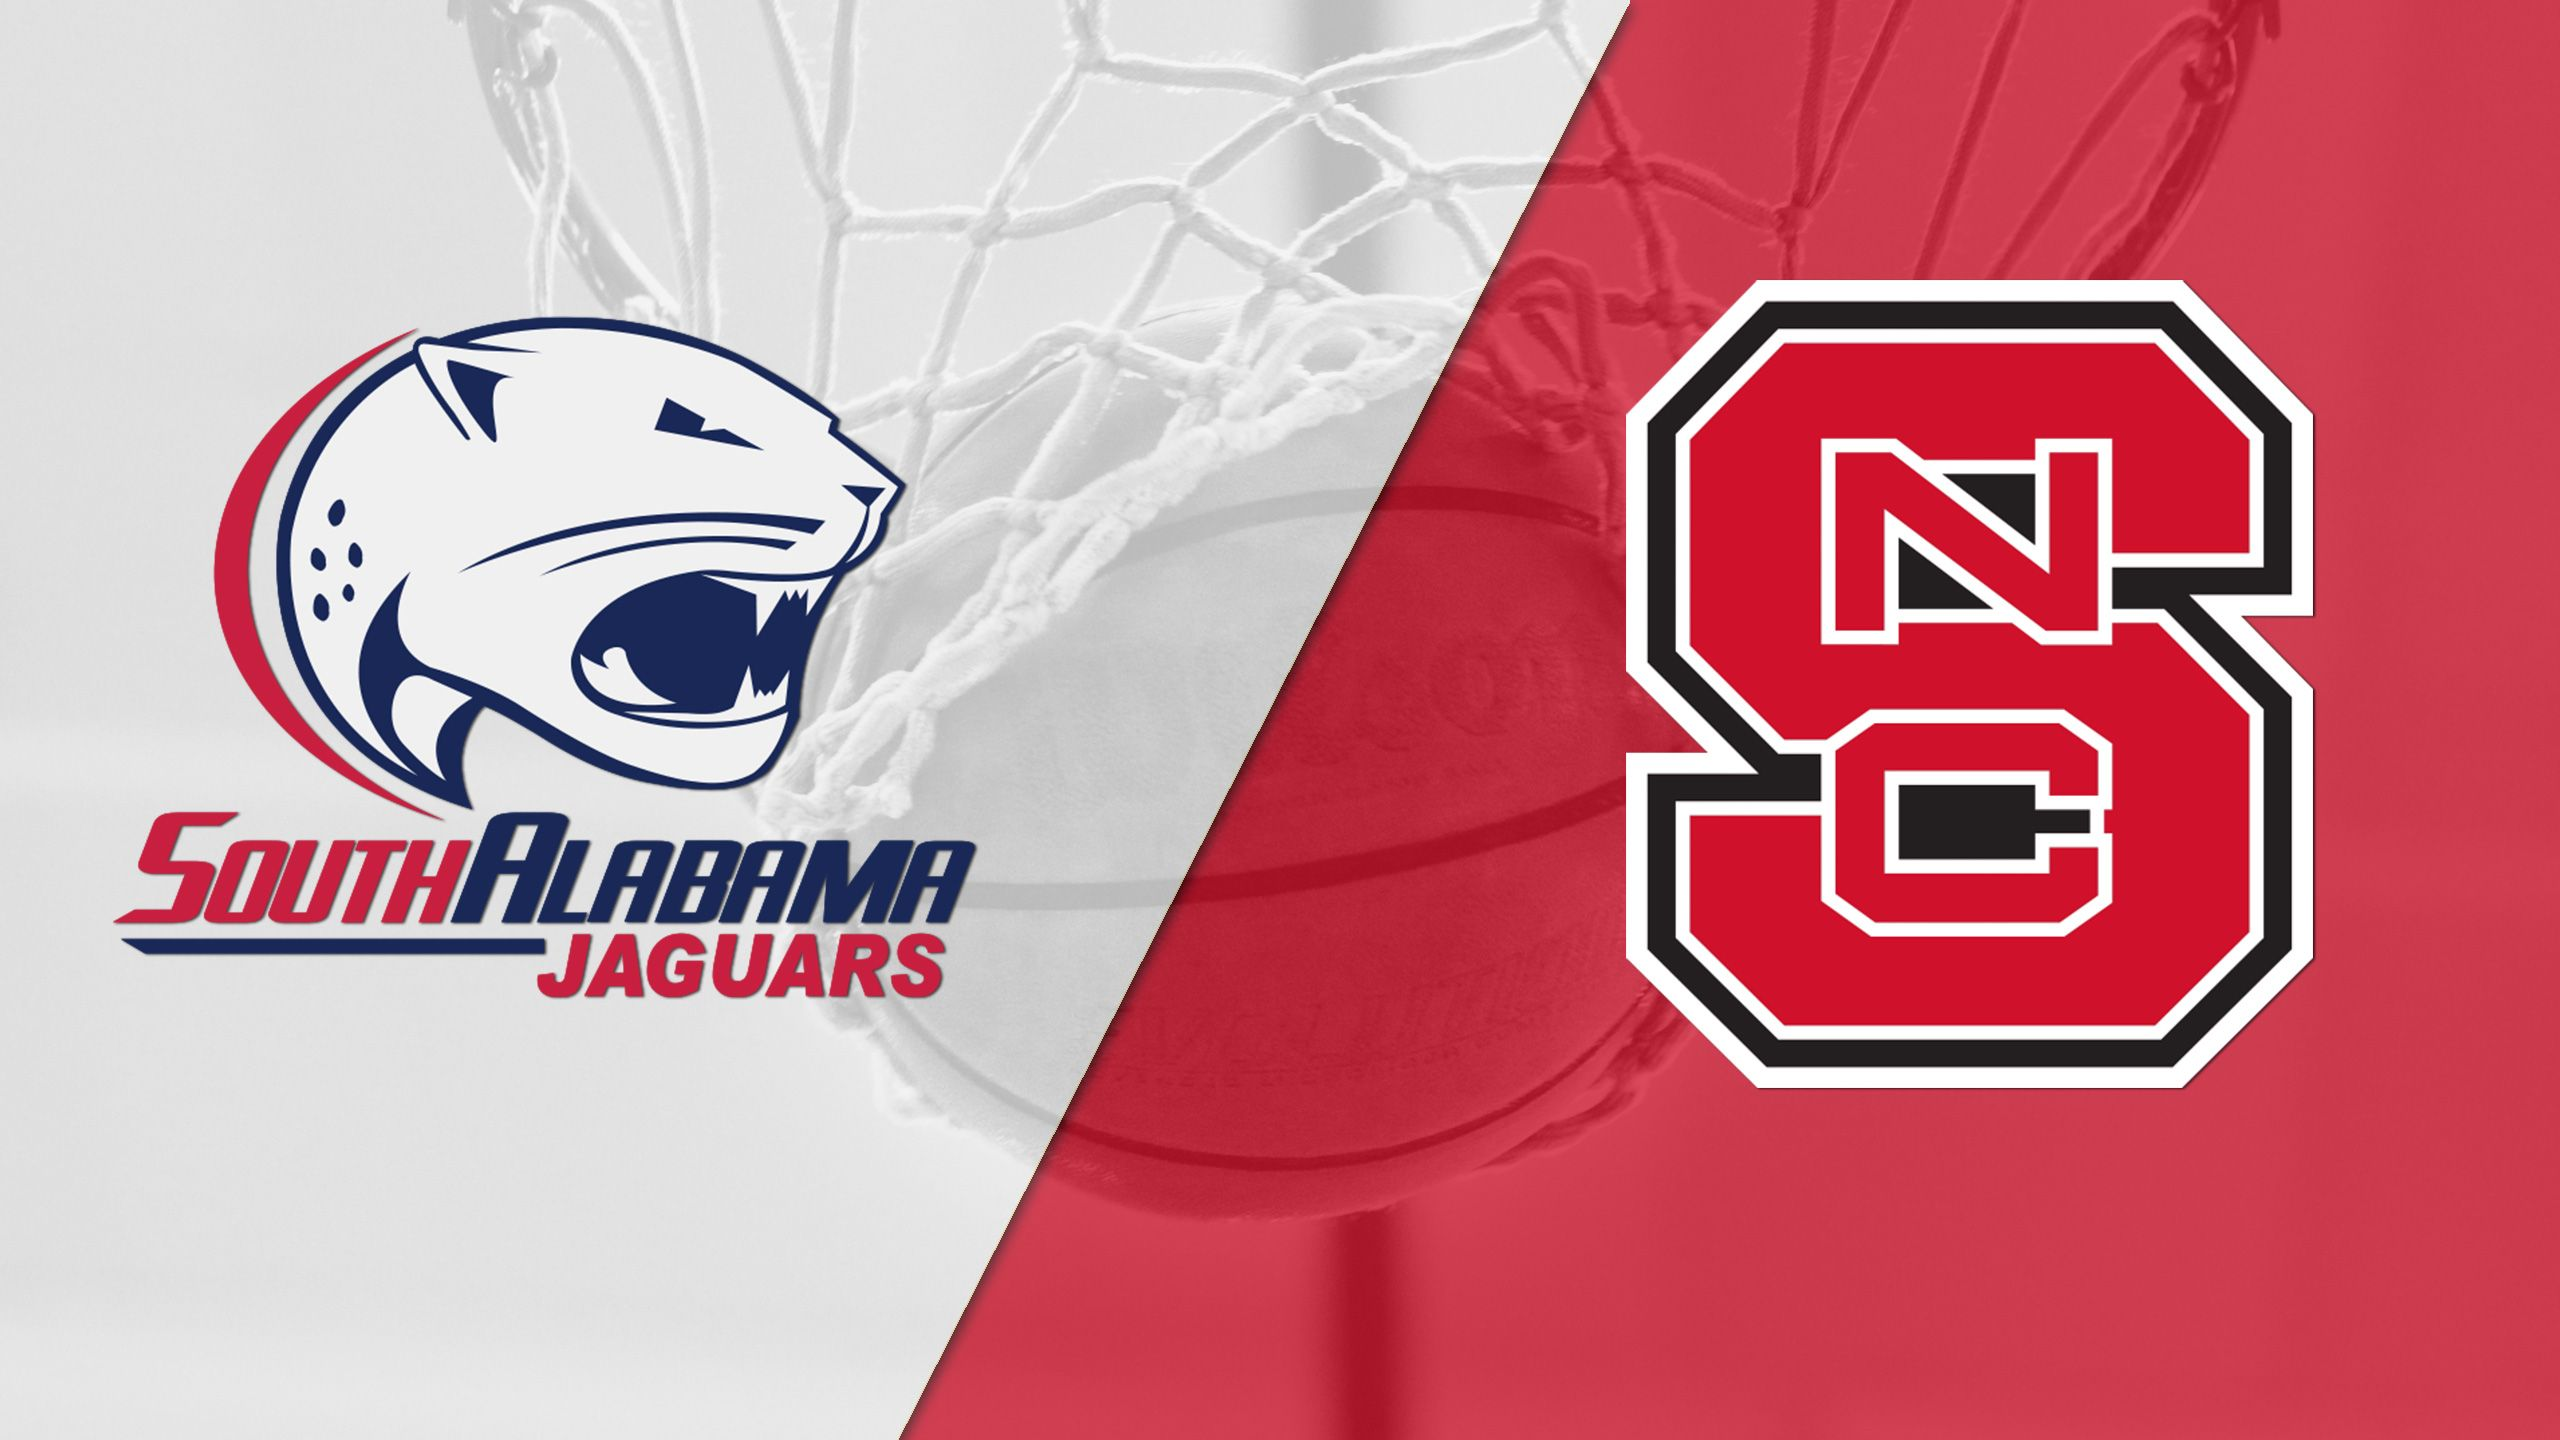 South Alabama vs. NC State (W Basketball)